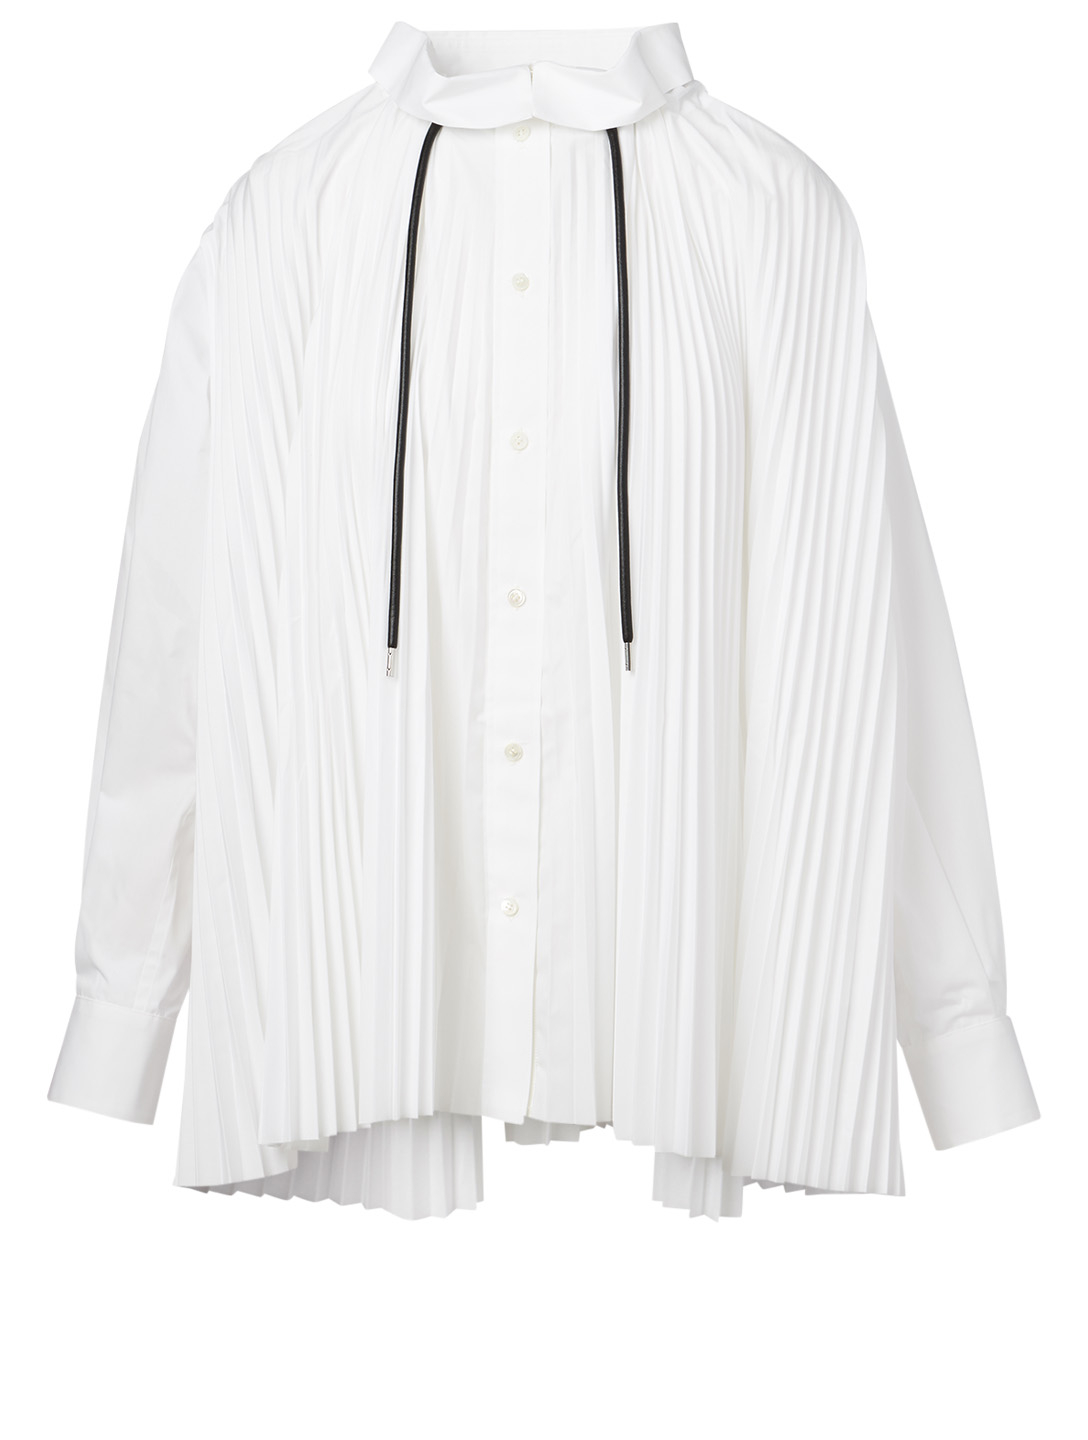 SACAI Cotton-Blend Pleated Shirt Women's White